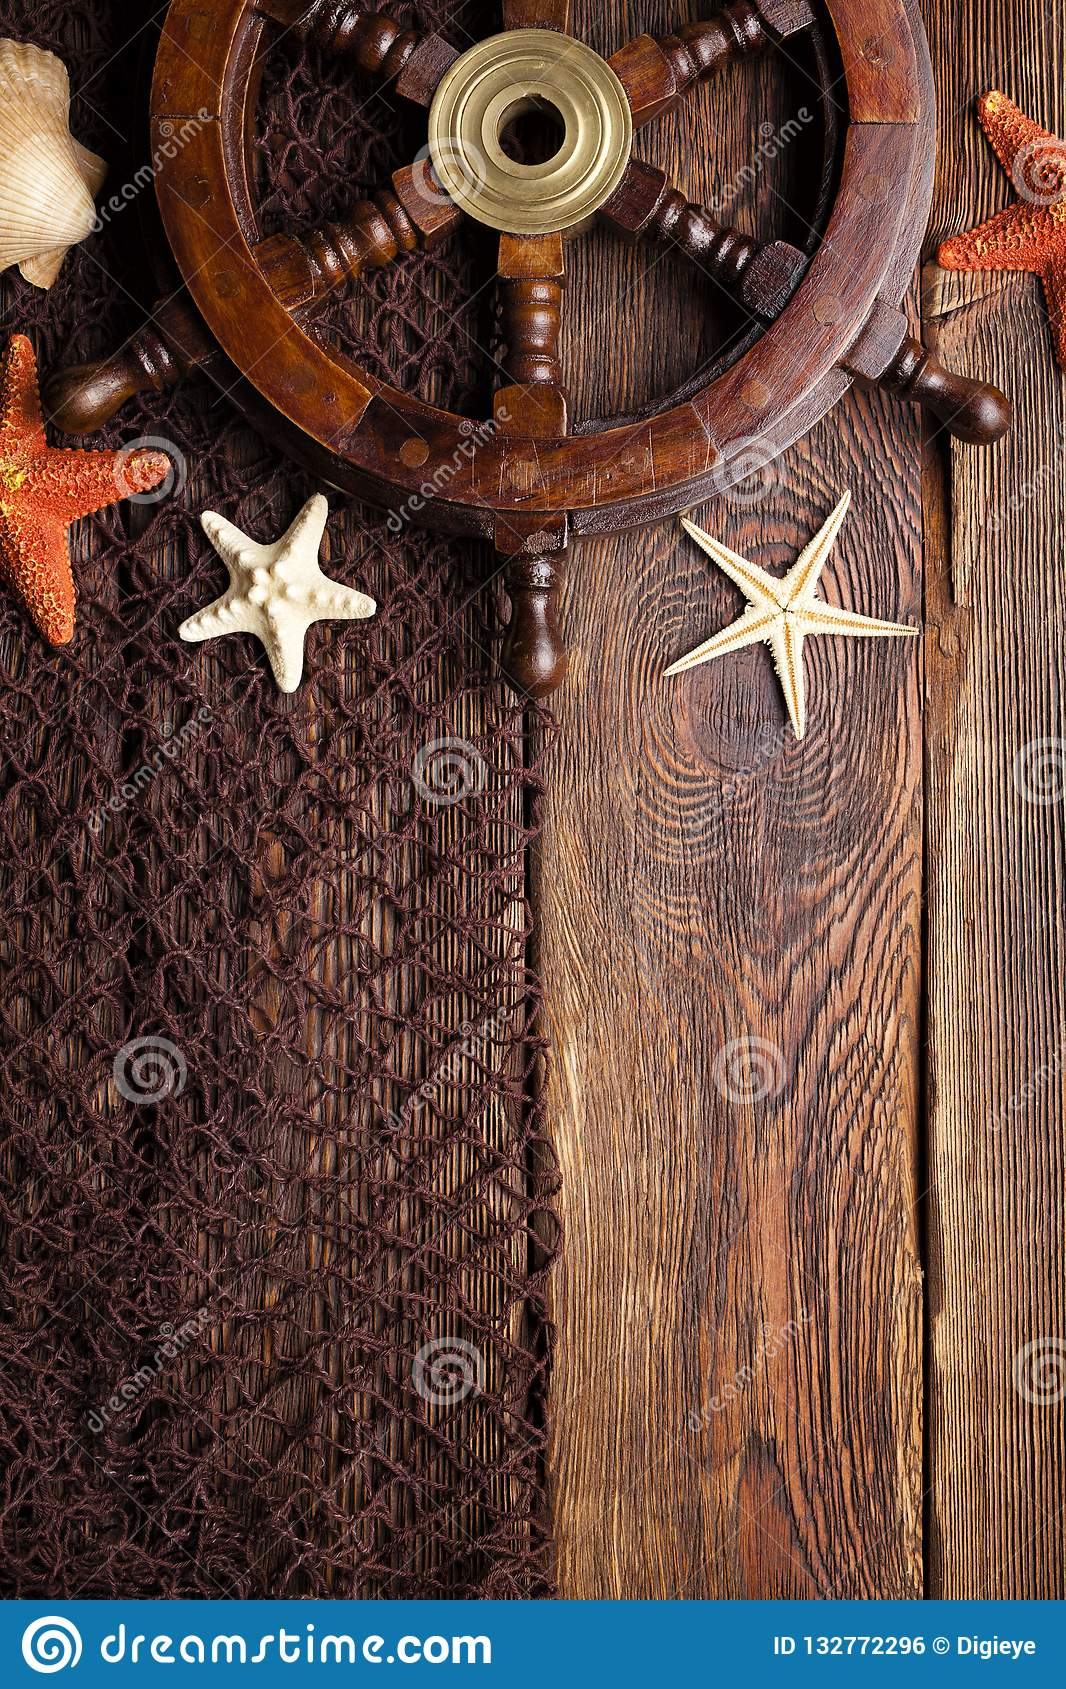 Ship S Steering Wheel Starfish And Fishing Net On Wooden Table Stock Photo Image Of Boat Wood 132772296